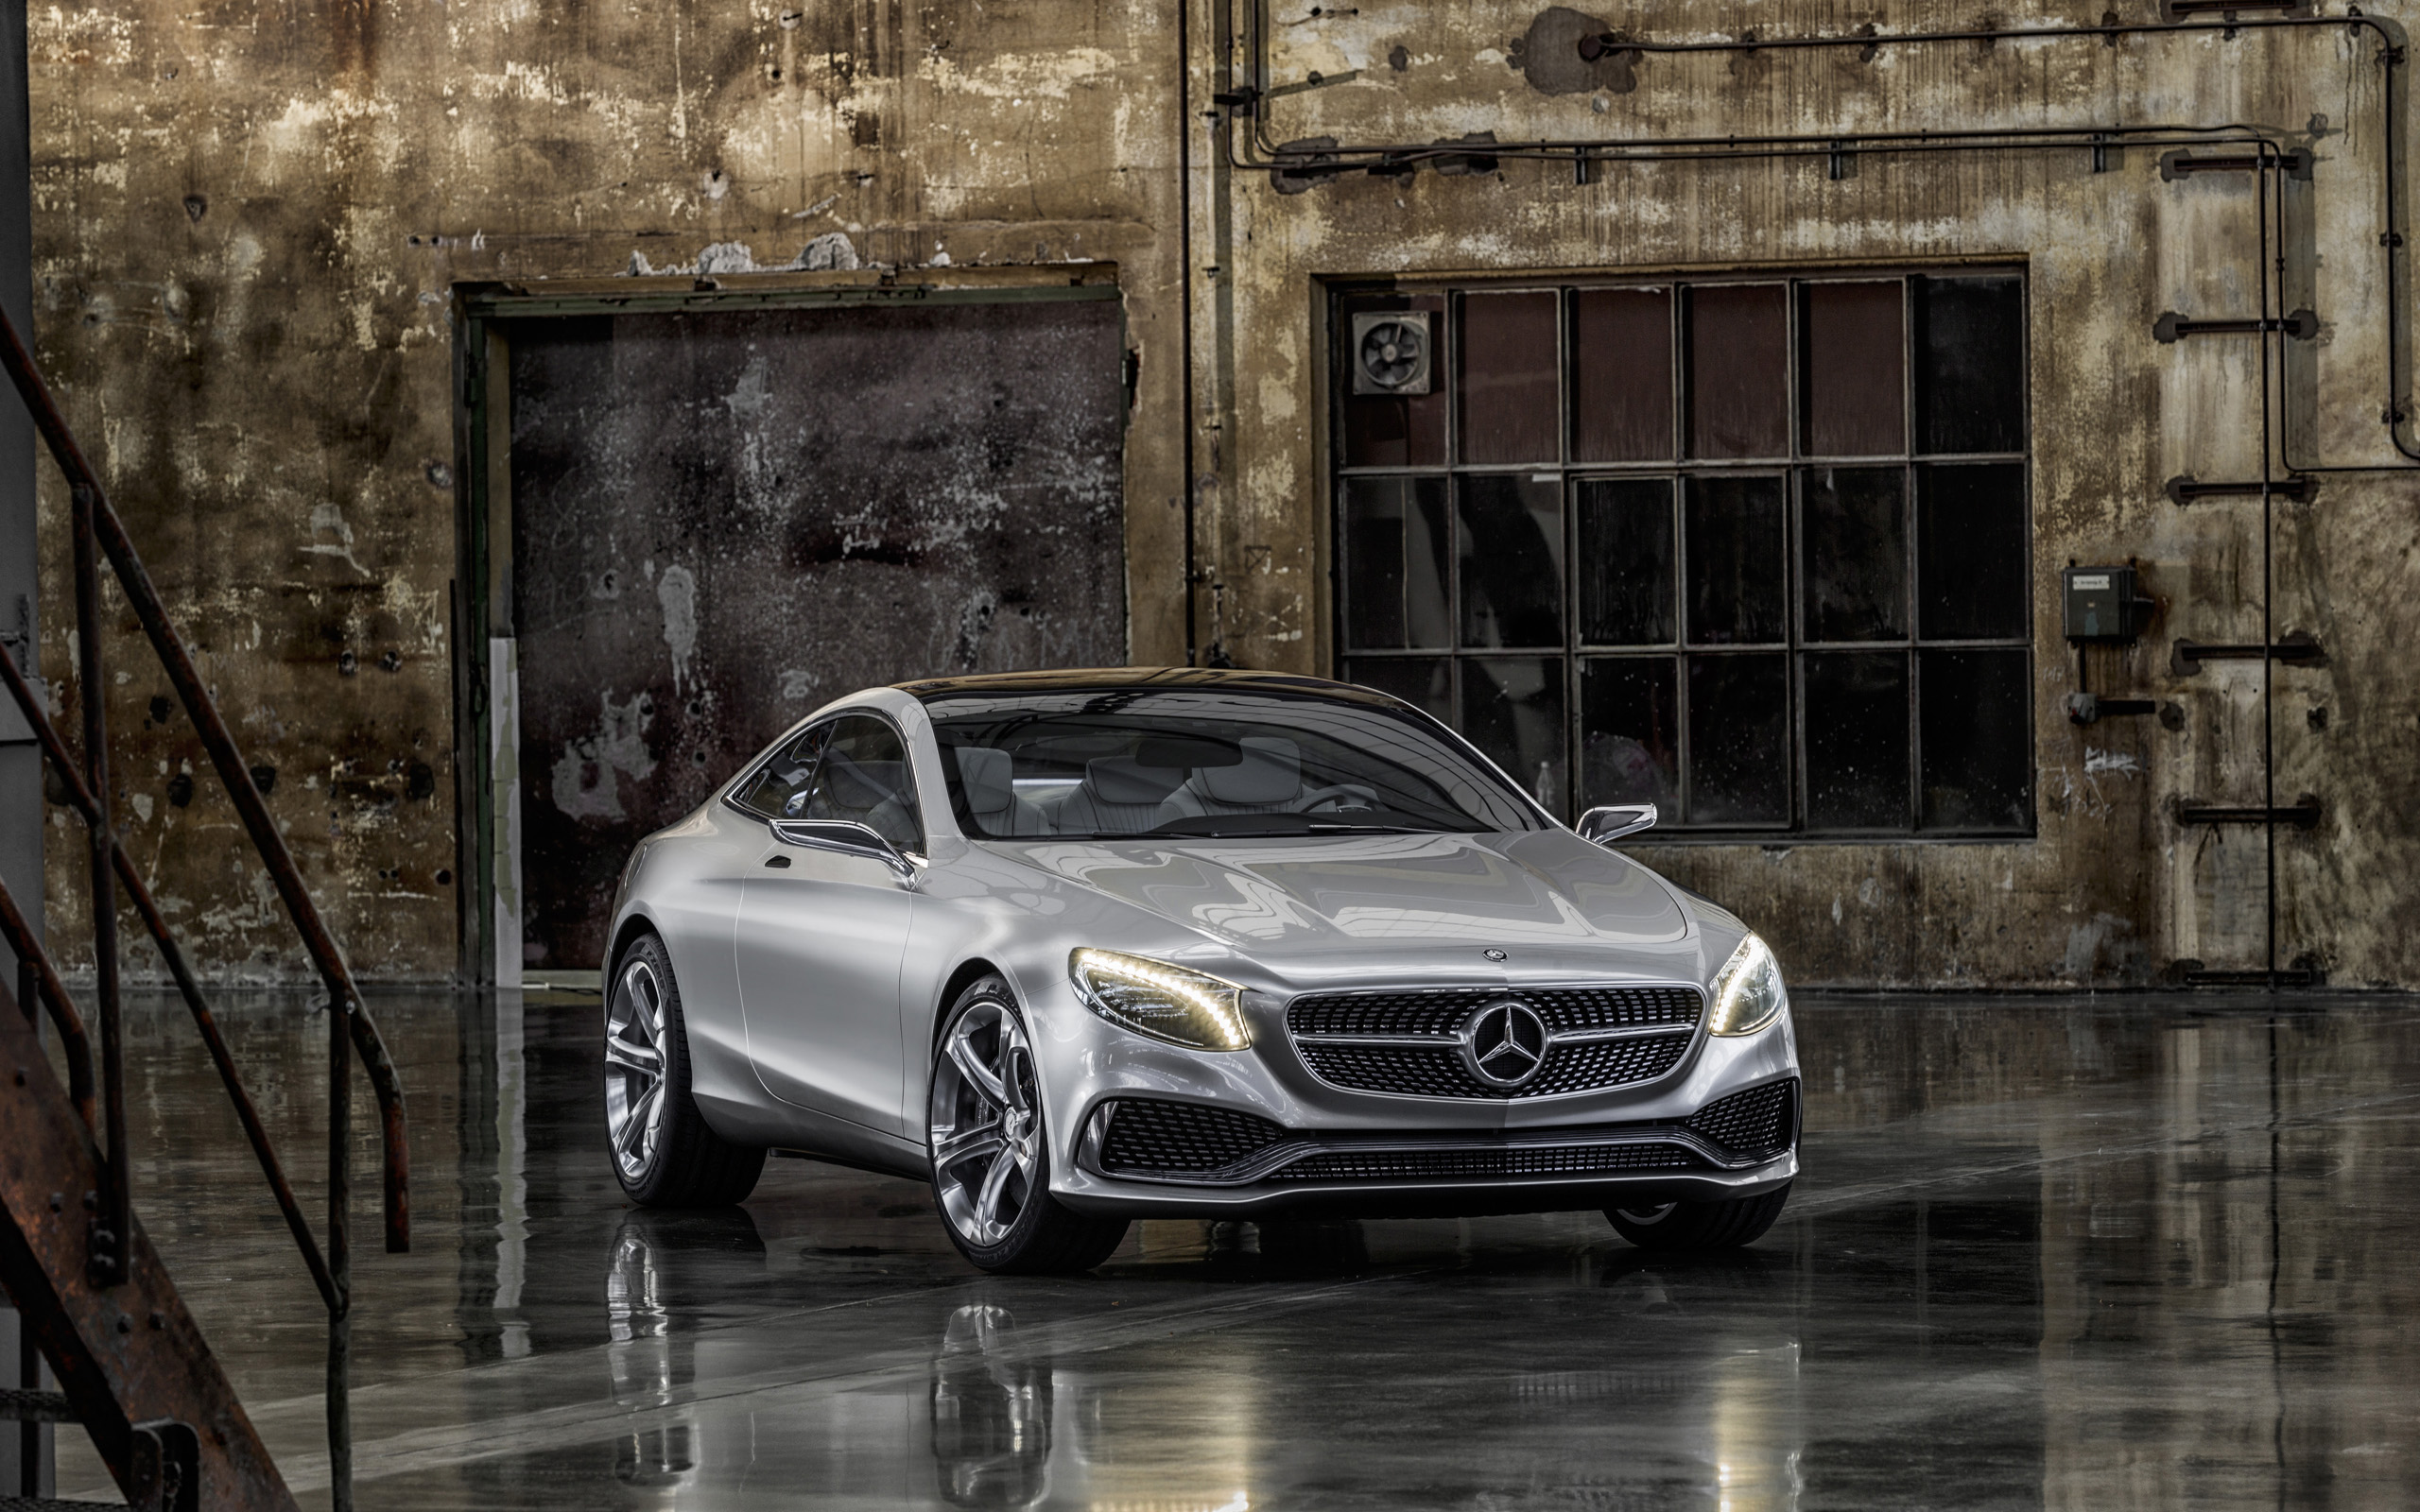 2013 Mercedes Benz S Class Coupe Wallpaper Hd Car Wallpapers Id